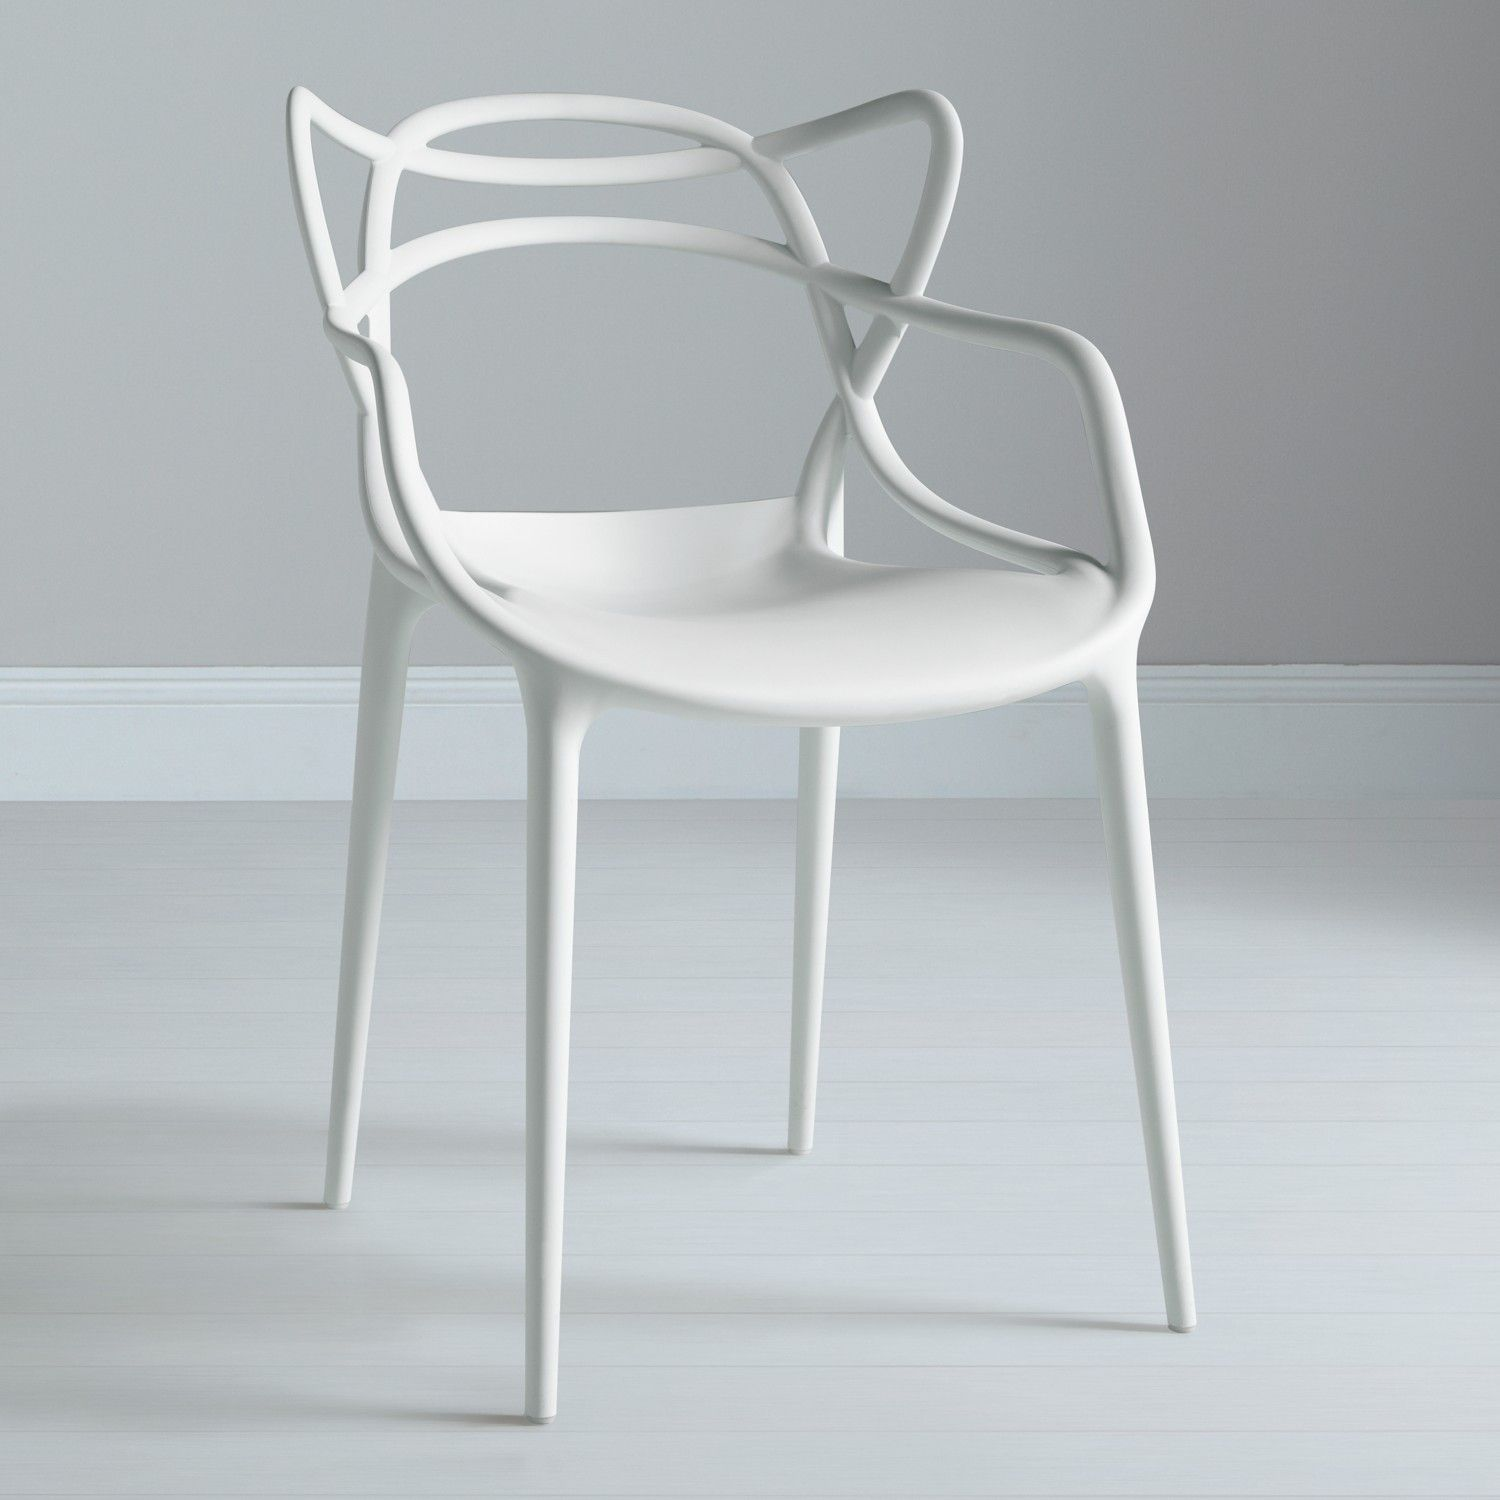 Philippe Starck for Kartell Masters Chairs Chairs